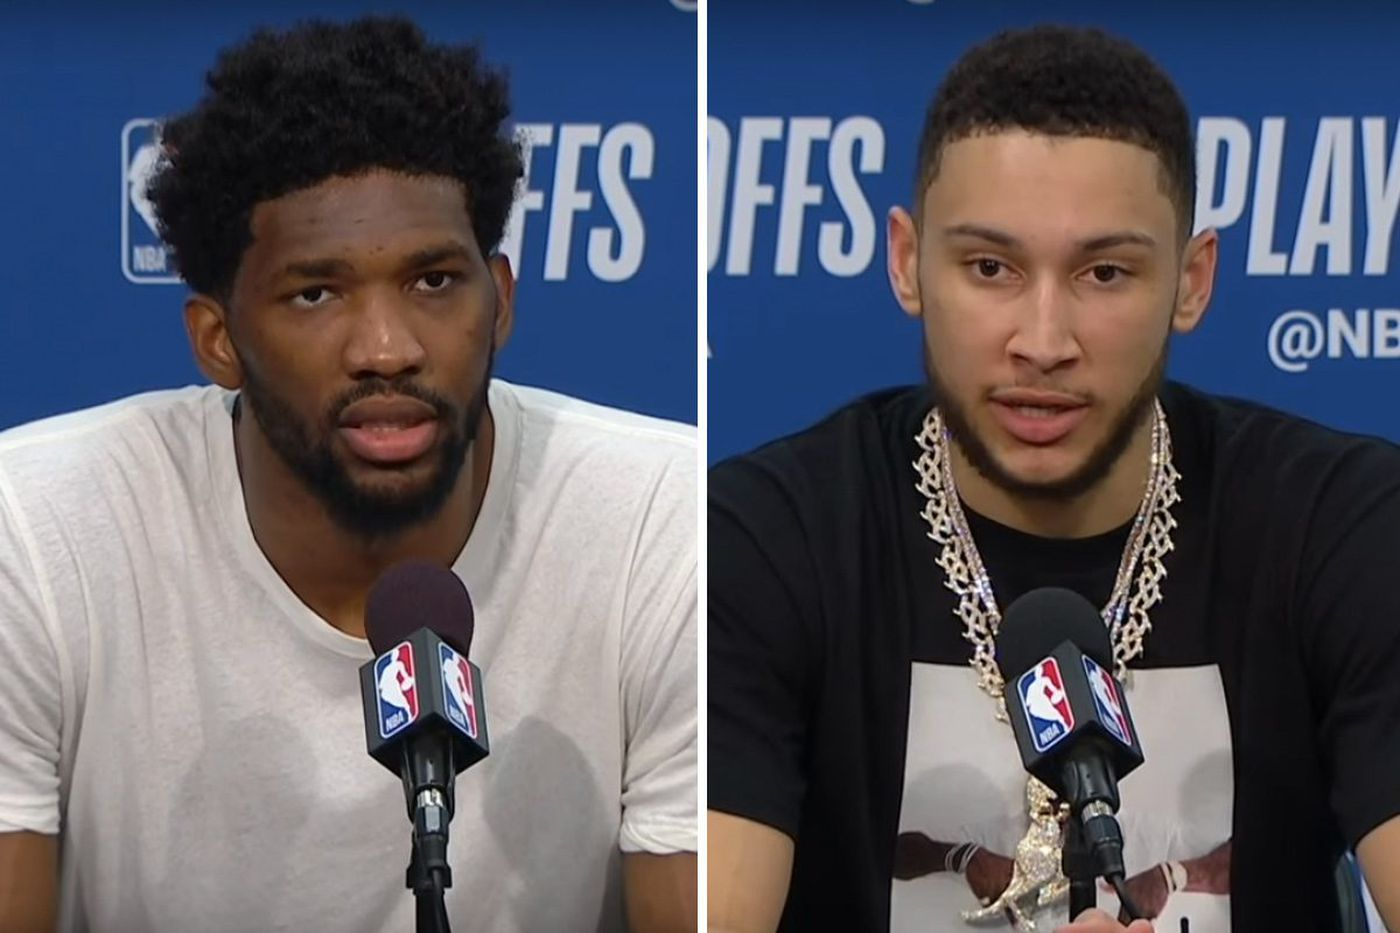 Joel Embiid's shirt sends a message, ESPN trying something new